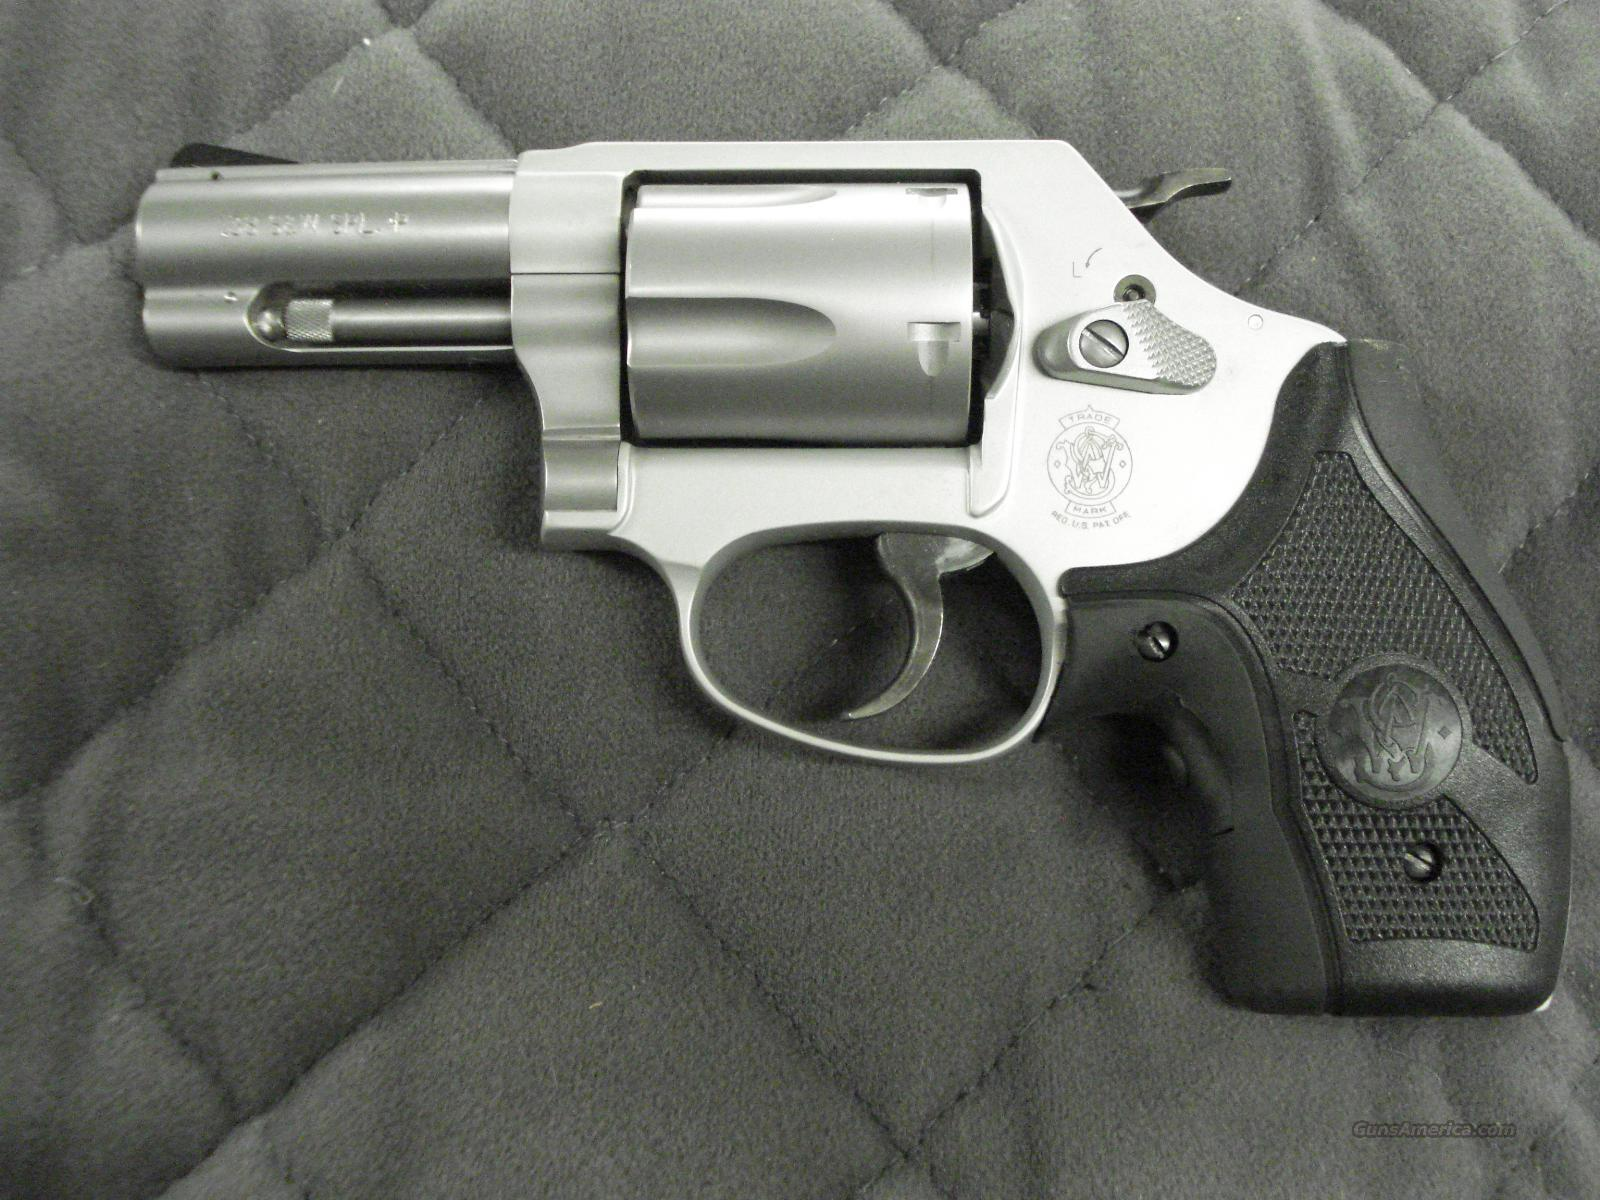 Smith & Wesson Model 637 CT 38 Special +P  **NEW**  Guns > Pistols > Smith & Wesson Revolvers > Pocket Pistols